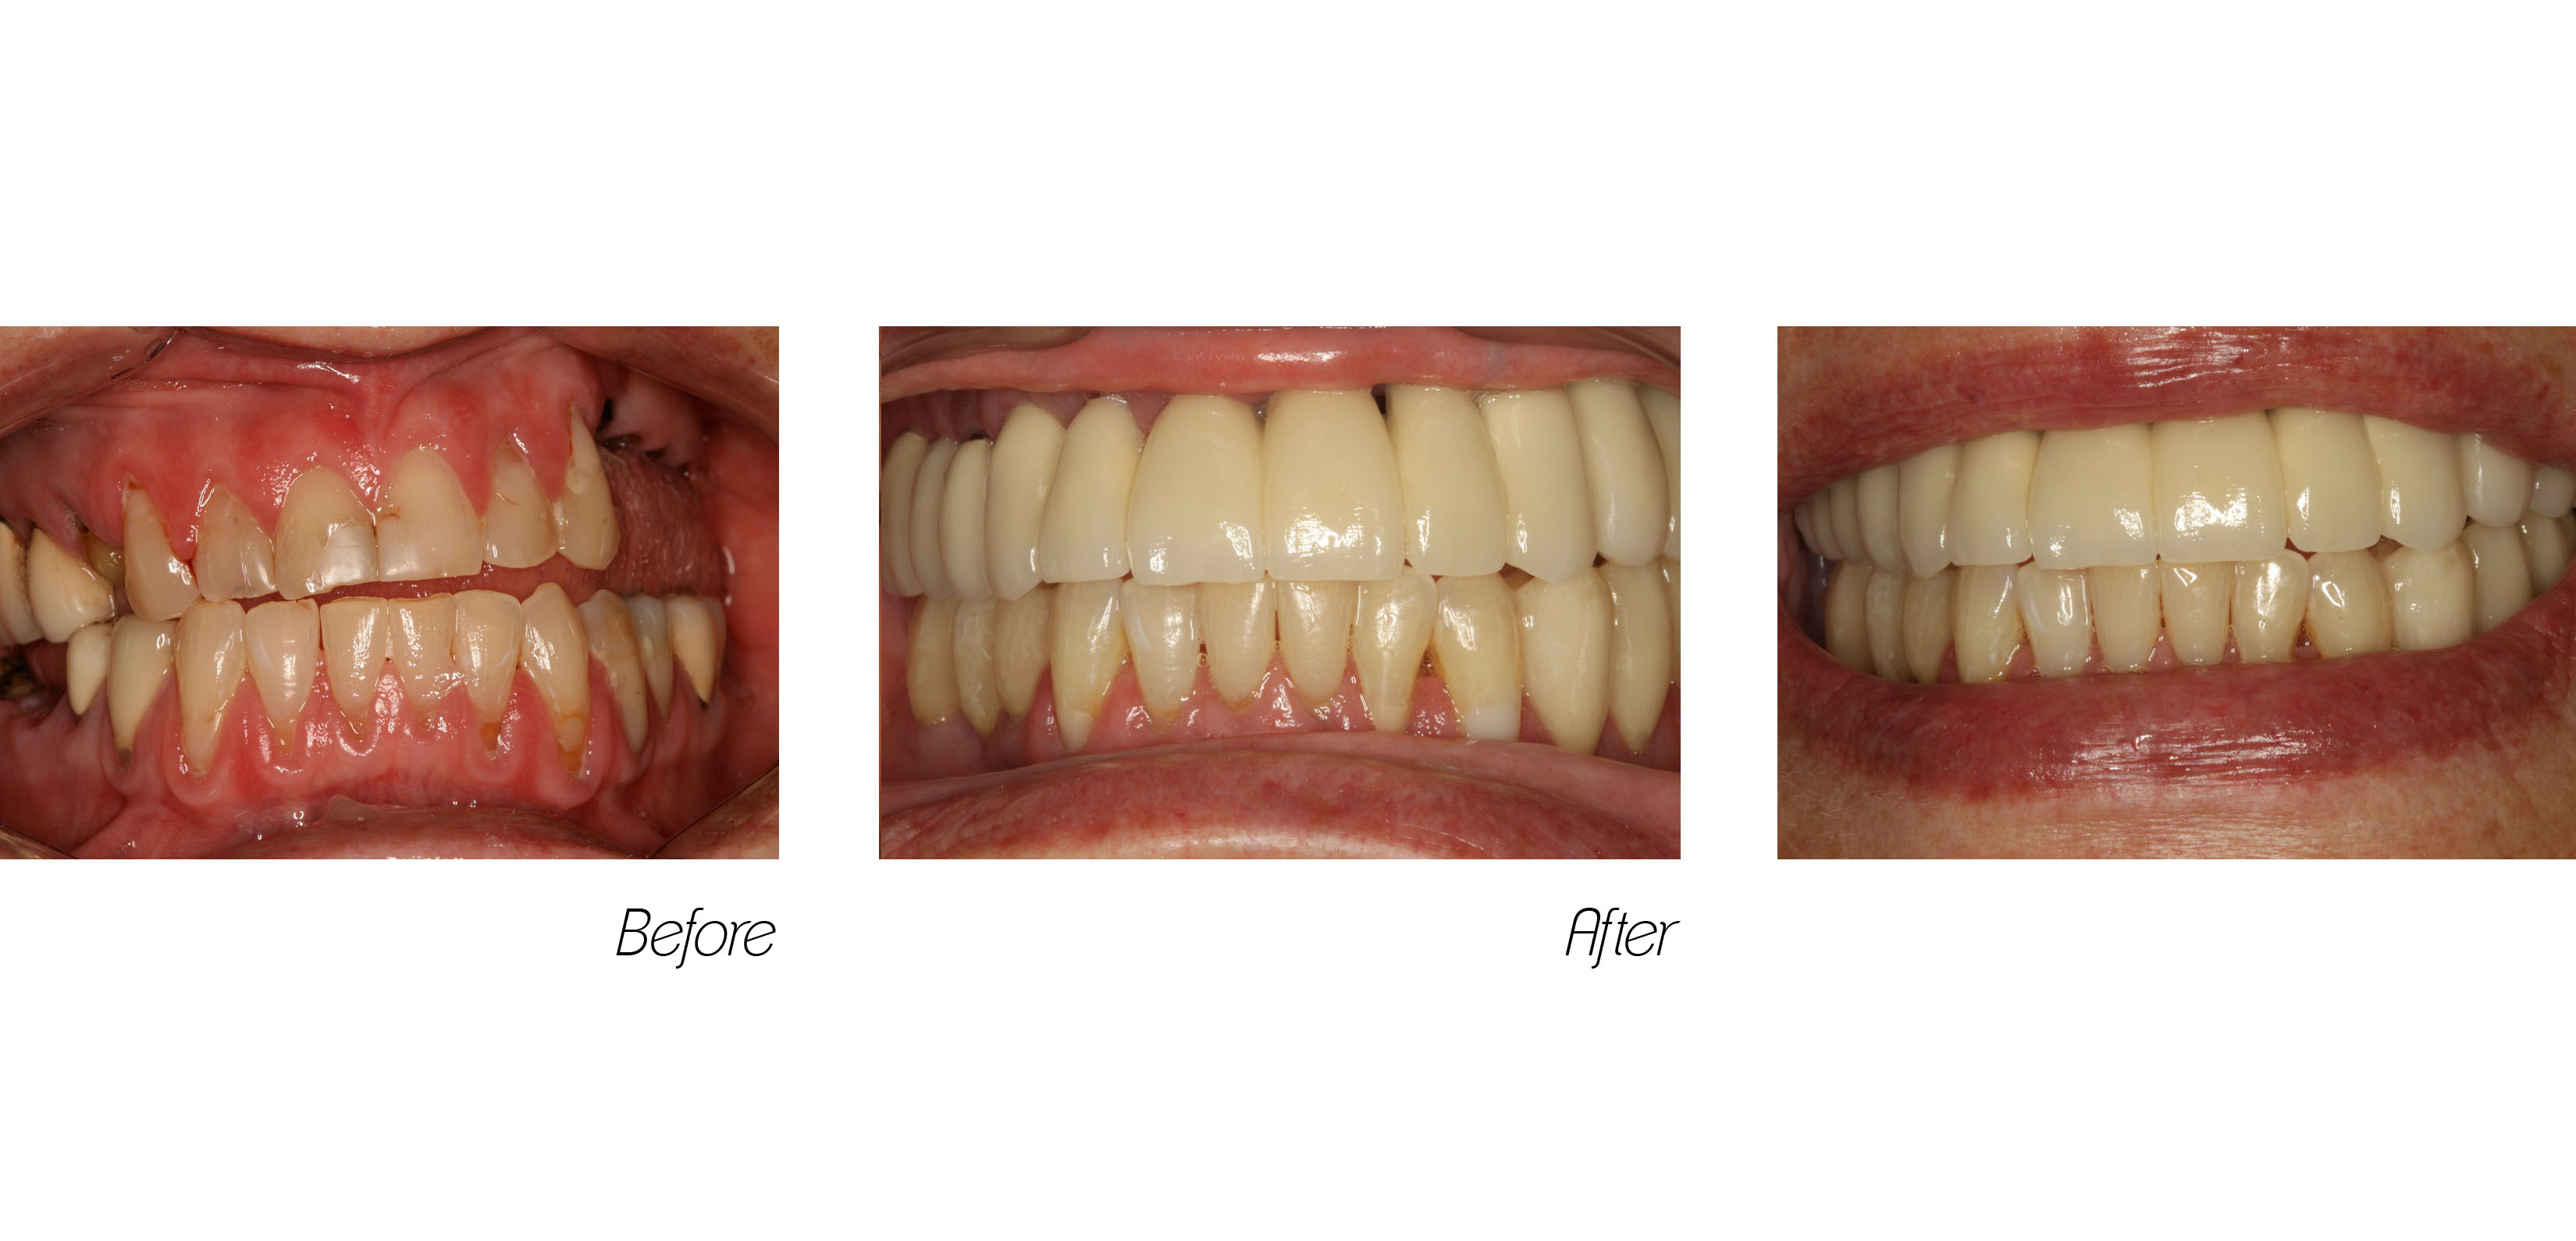 Crowns#9 (Implant)